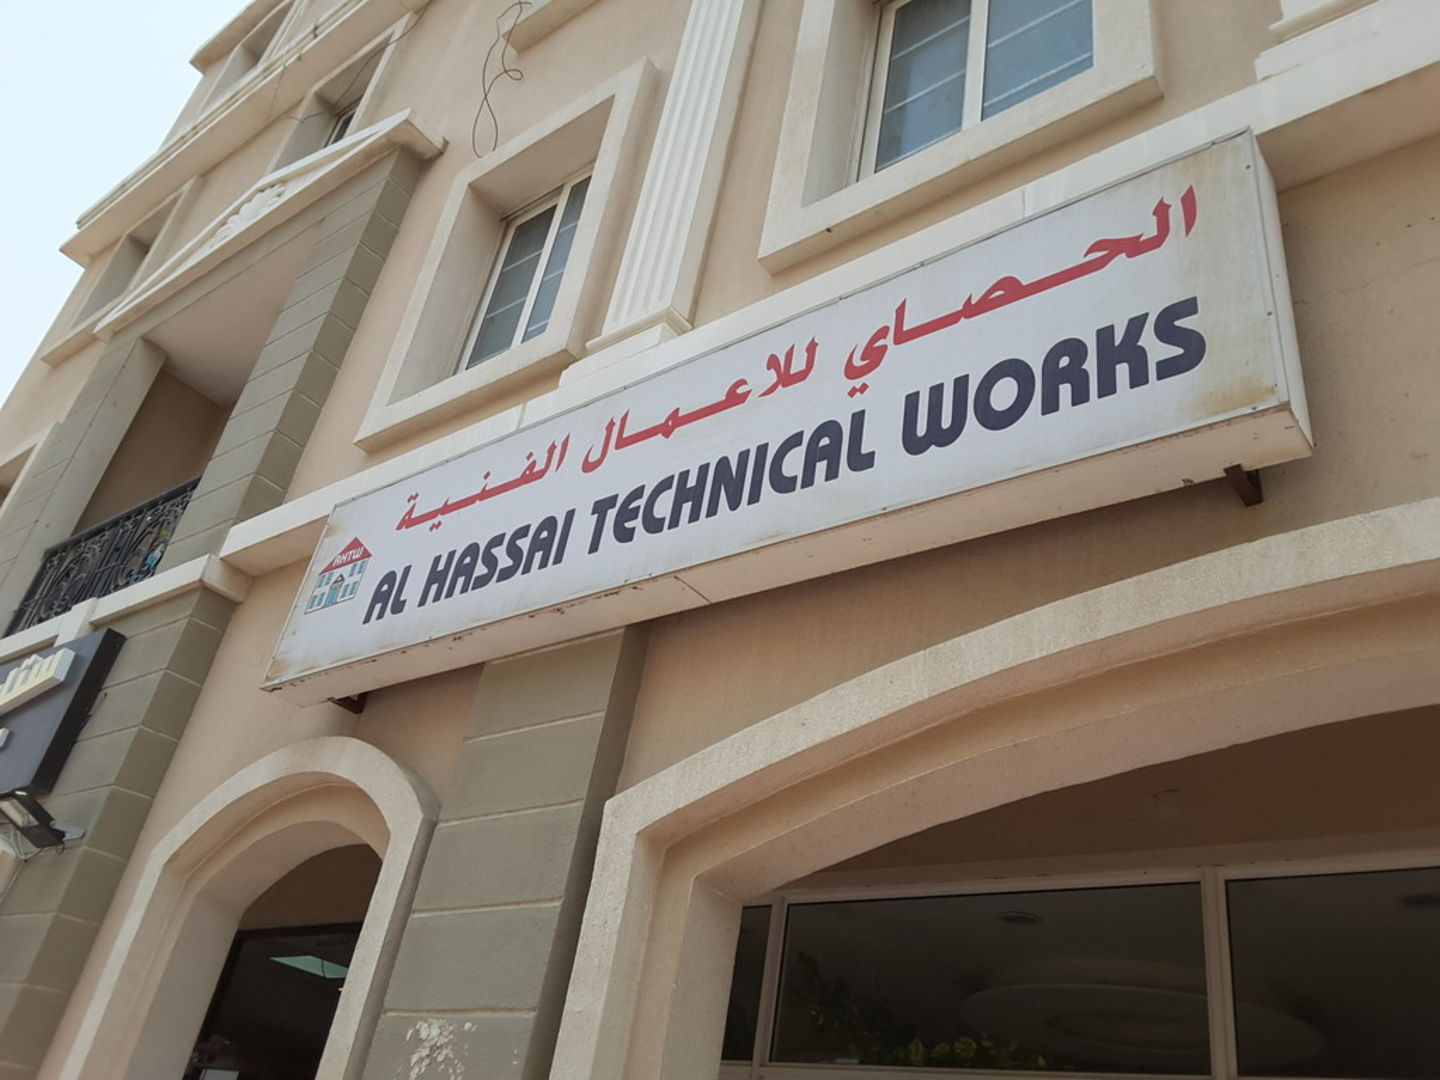 Walif-business-al-hassai-technical-works